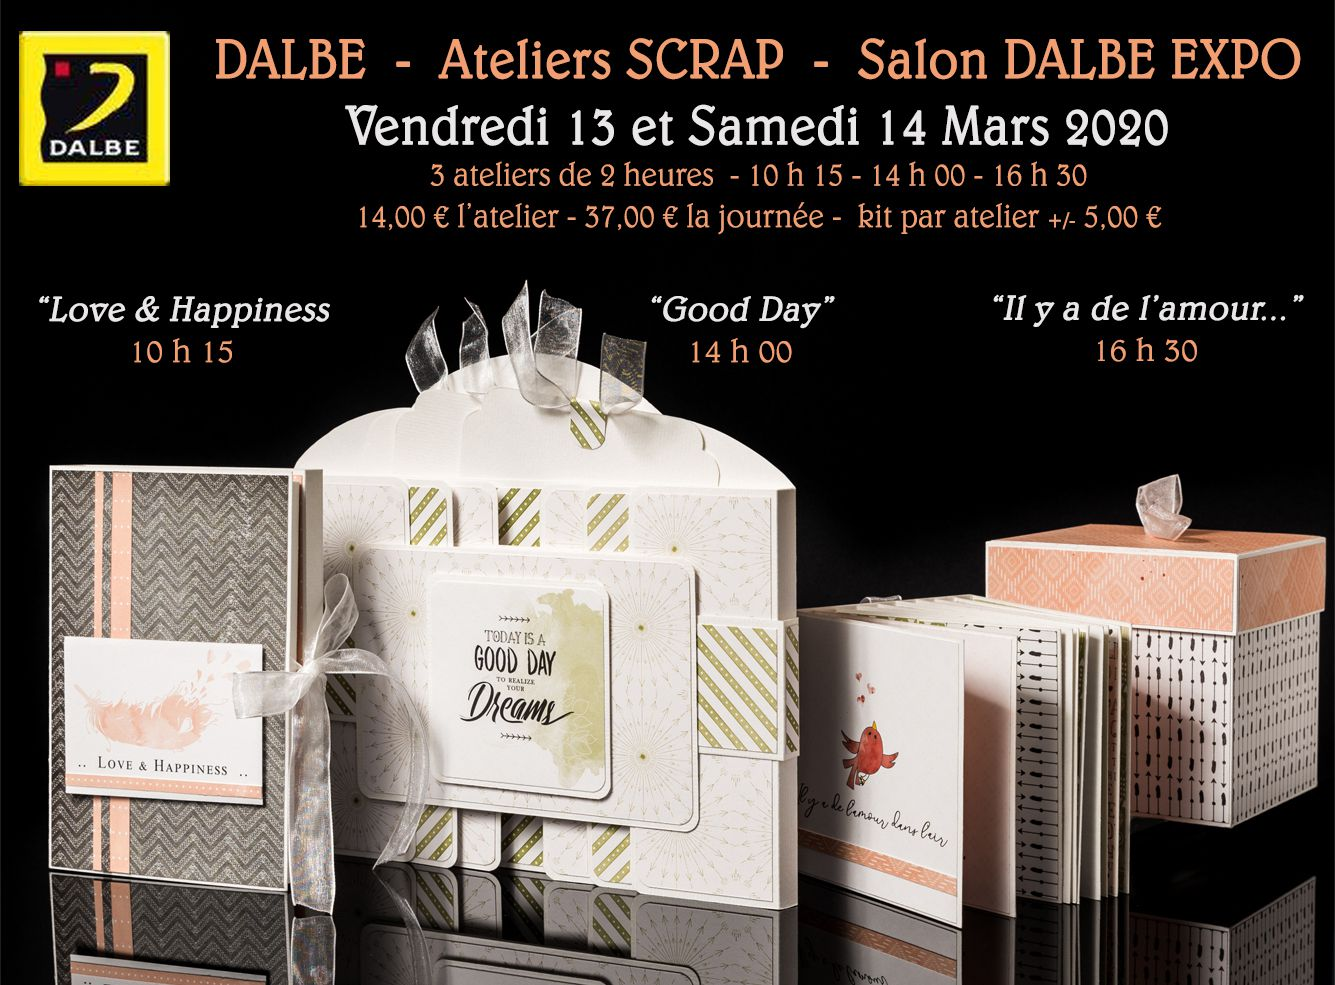 DALBE - Salon Dalbe Expo 2020 - Love & Happiness  1/3